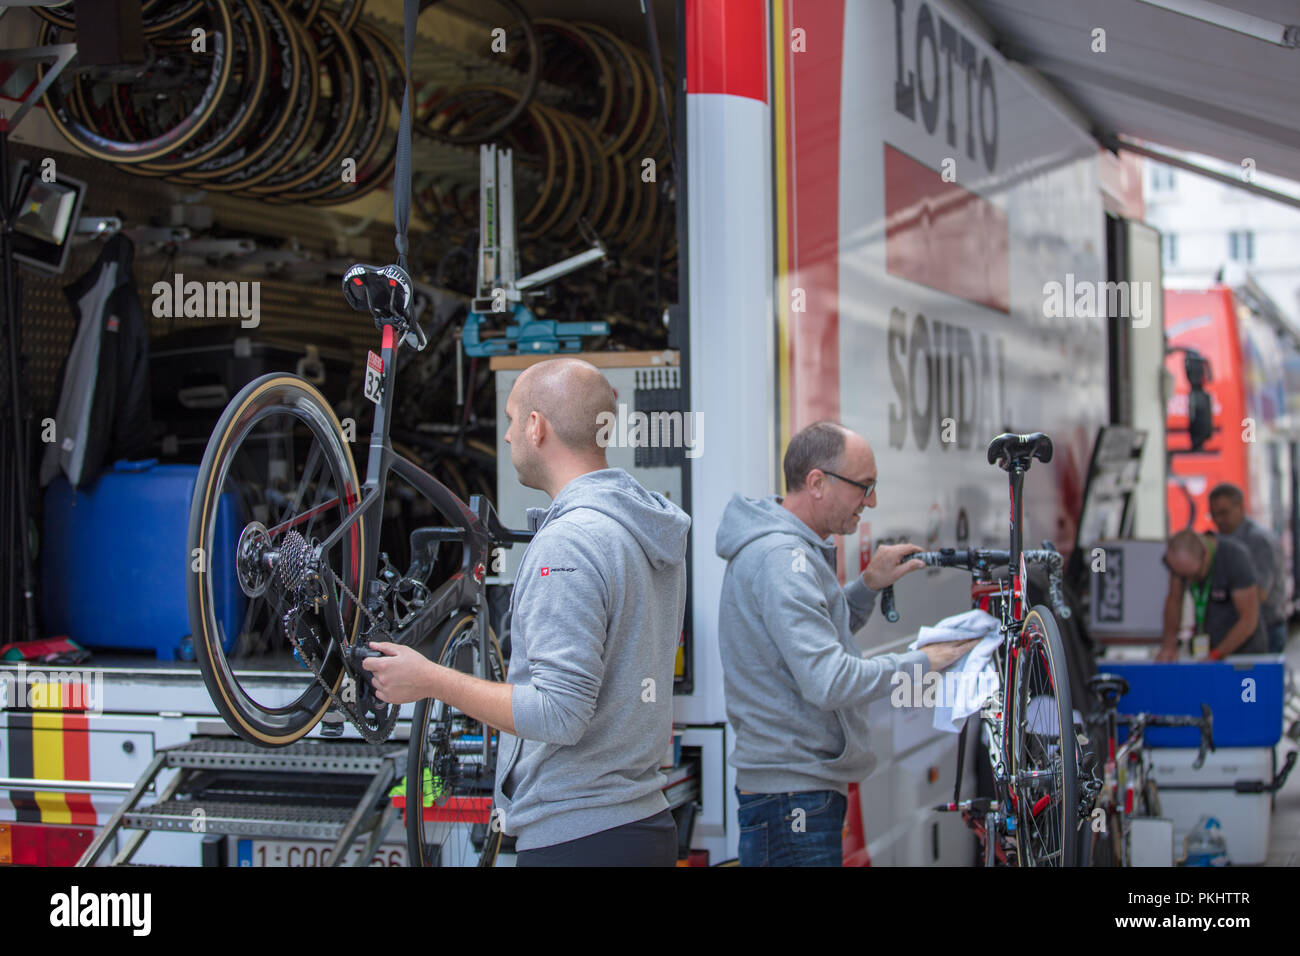 Tour of Britain 2018, London,GB. Bicycle mechanics of team Lotto Soudal, hard at work back stage preparing and fine tuning bikes before the last stage - Stock Image